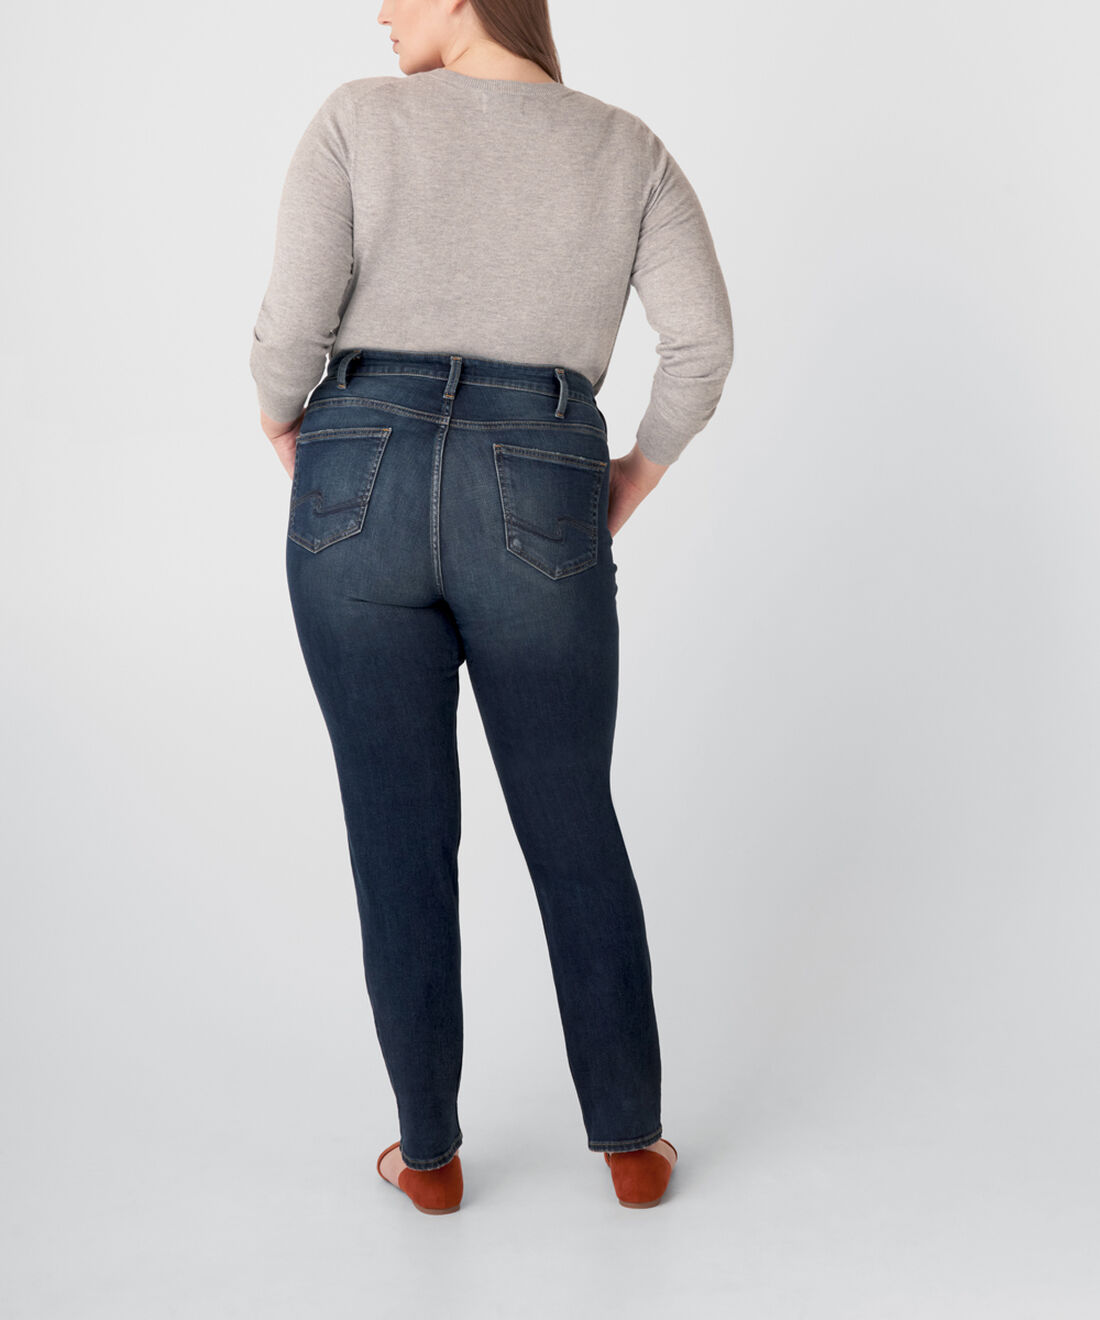 Avery High Rise Straight Leg Jeans Plus Size Back